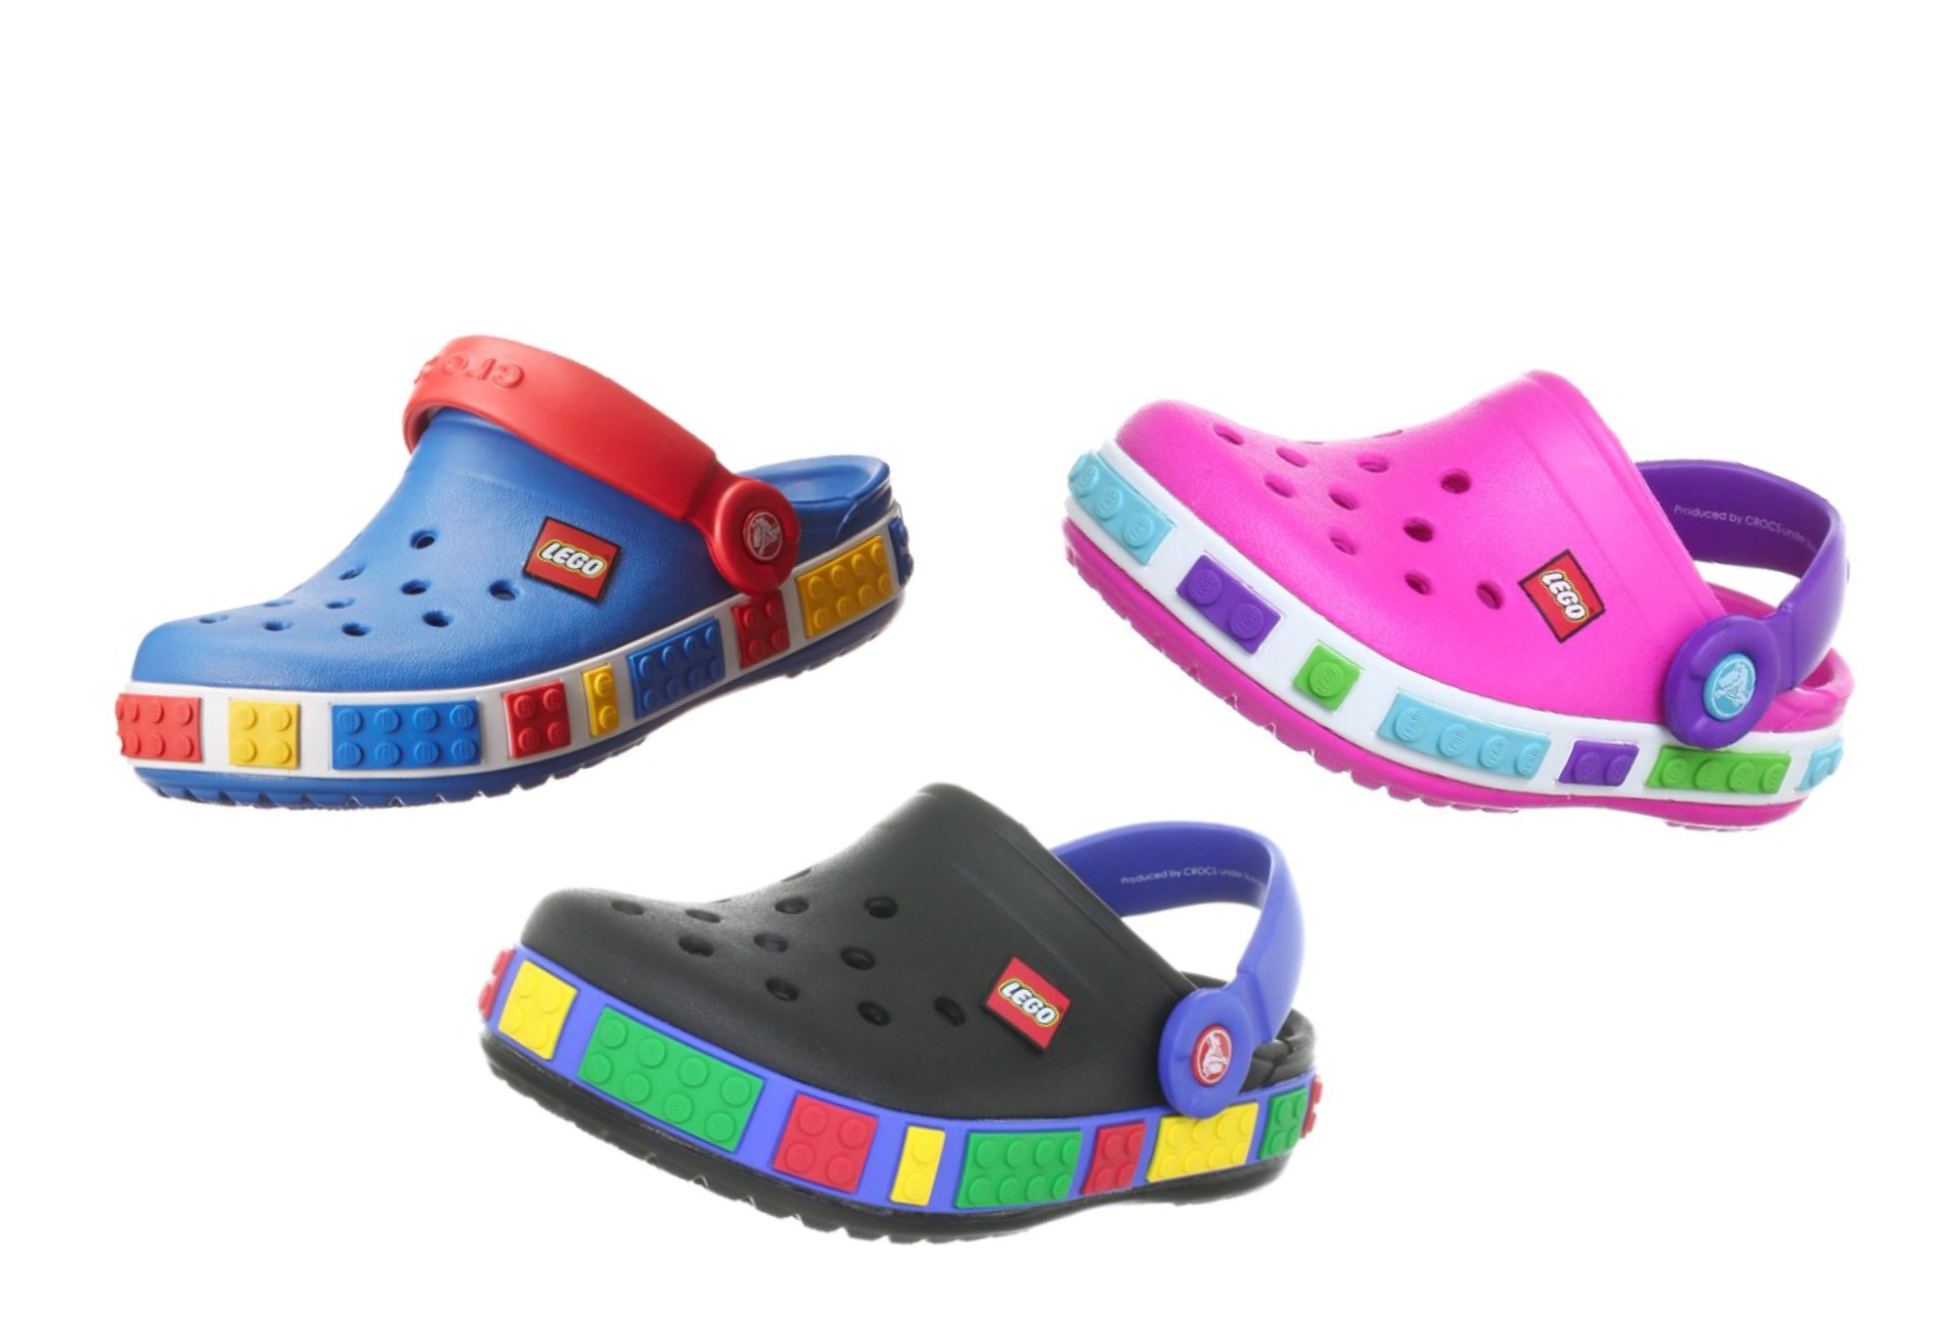 Crocs Crocband Lego Backstrap Clogs As Low As $20.99 + FREE Prime Shipping!